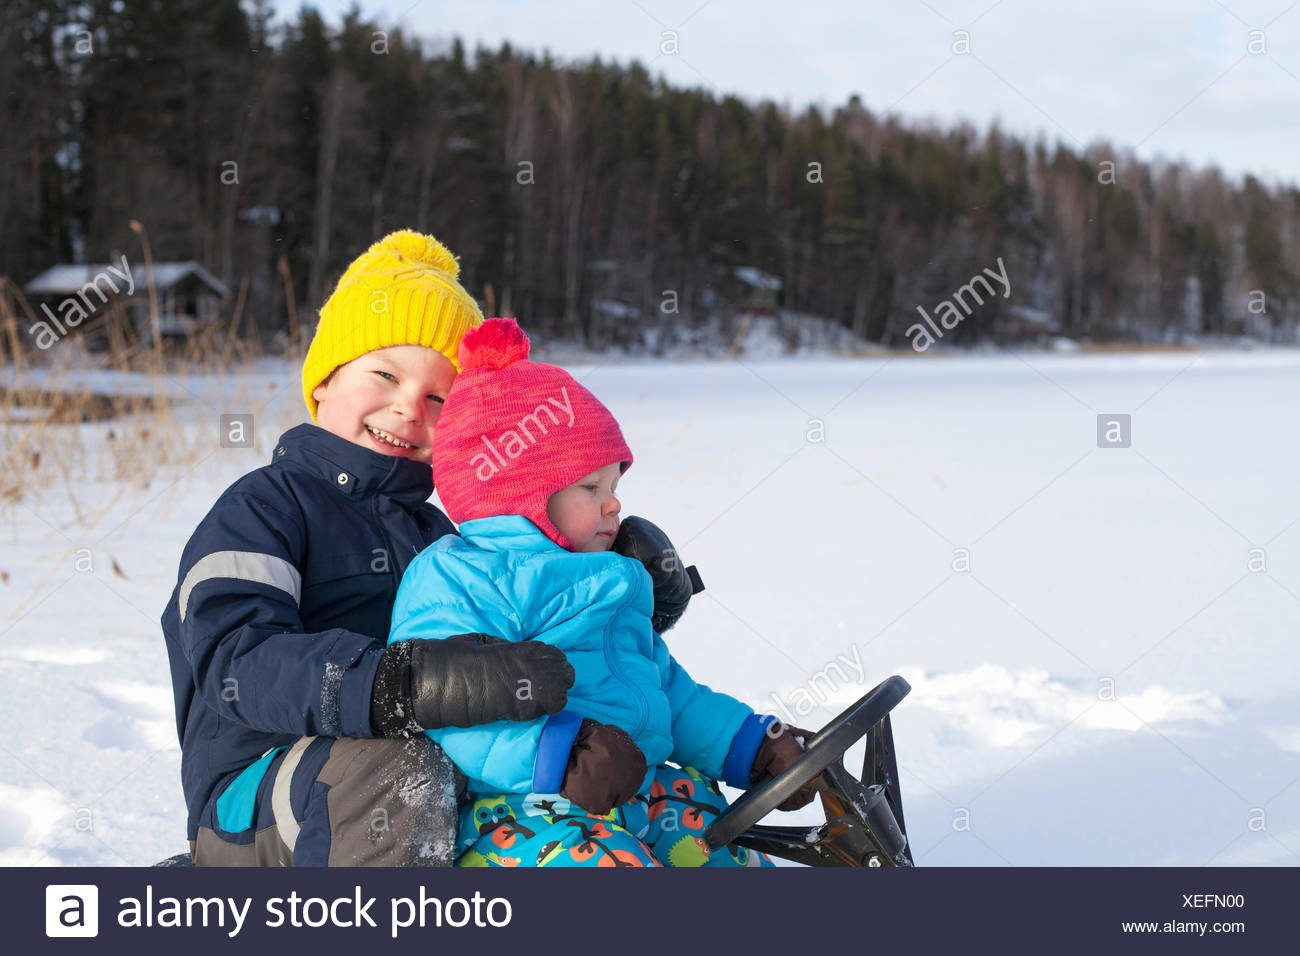 Two young brothers sitting on sledge, in snow covered landscape - Stock Image